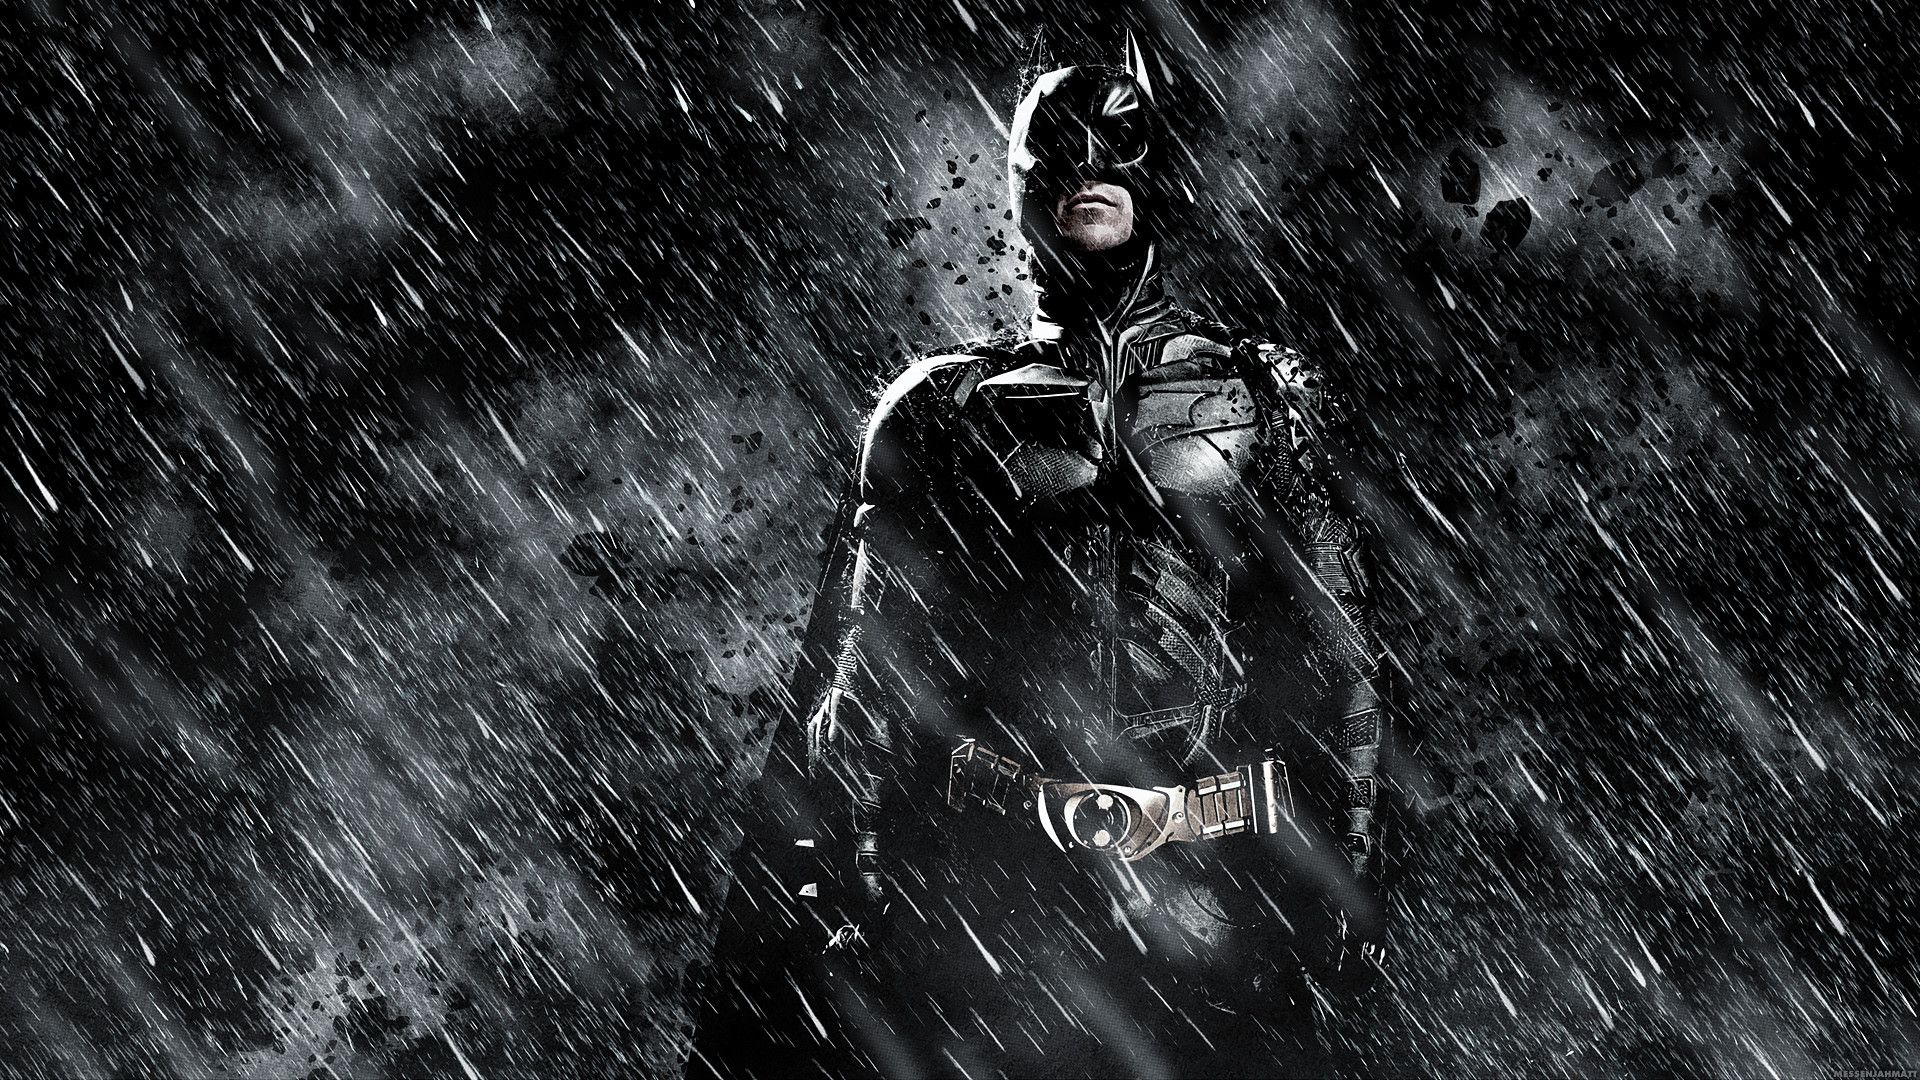 Dispelling Myths - Comic Book Elements In THE DARK KNIGHT RISES